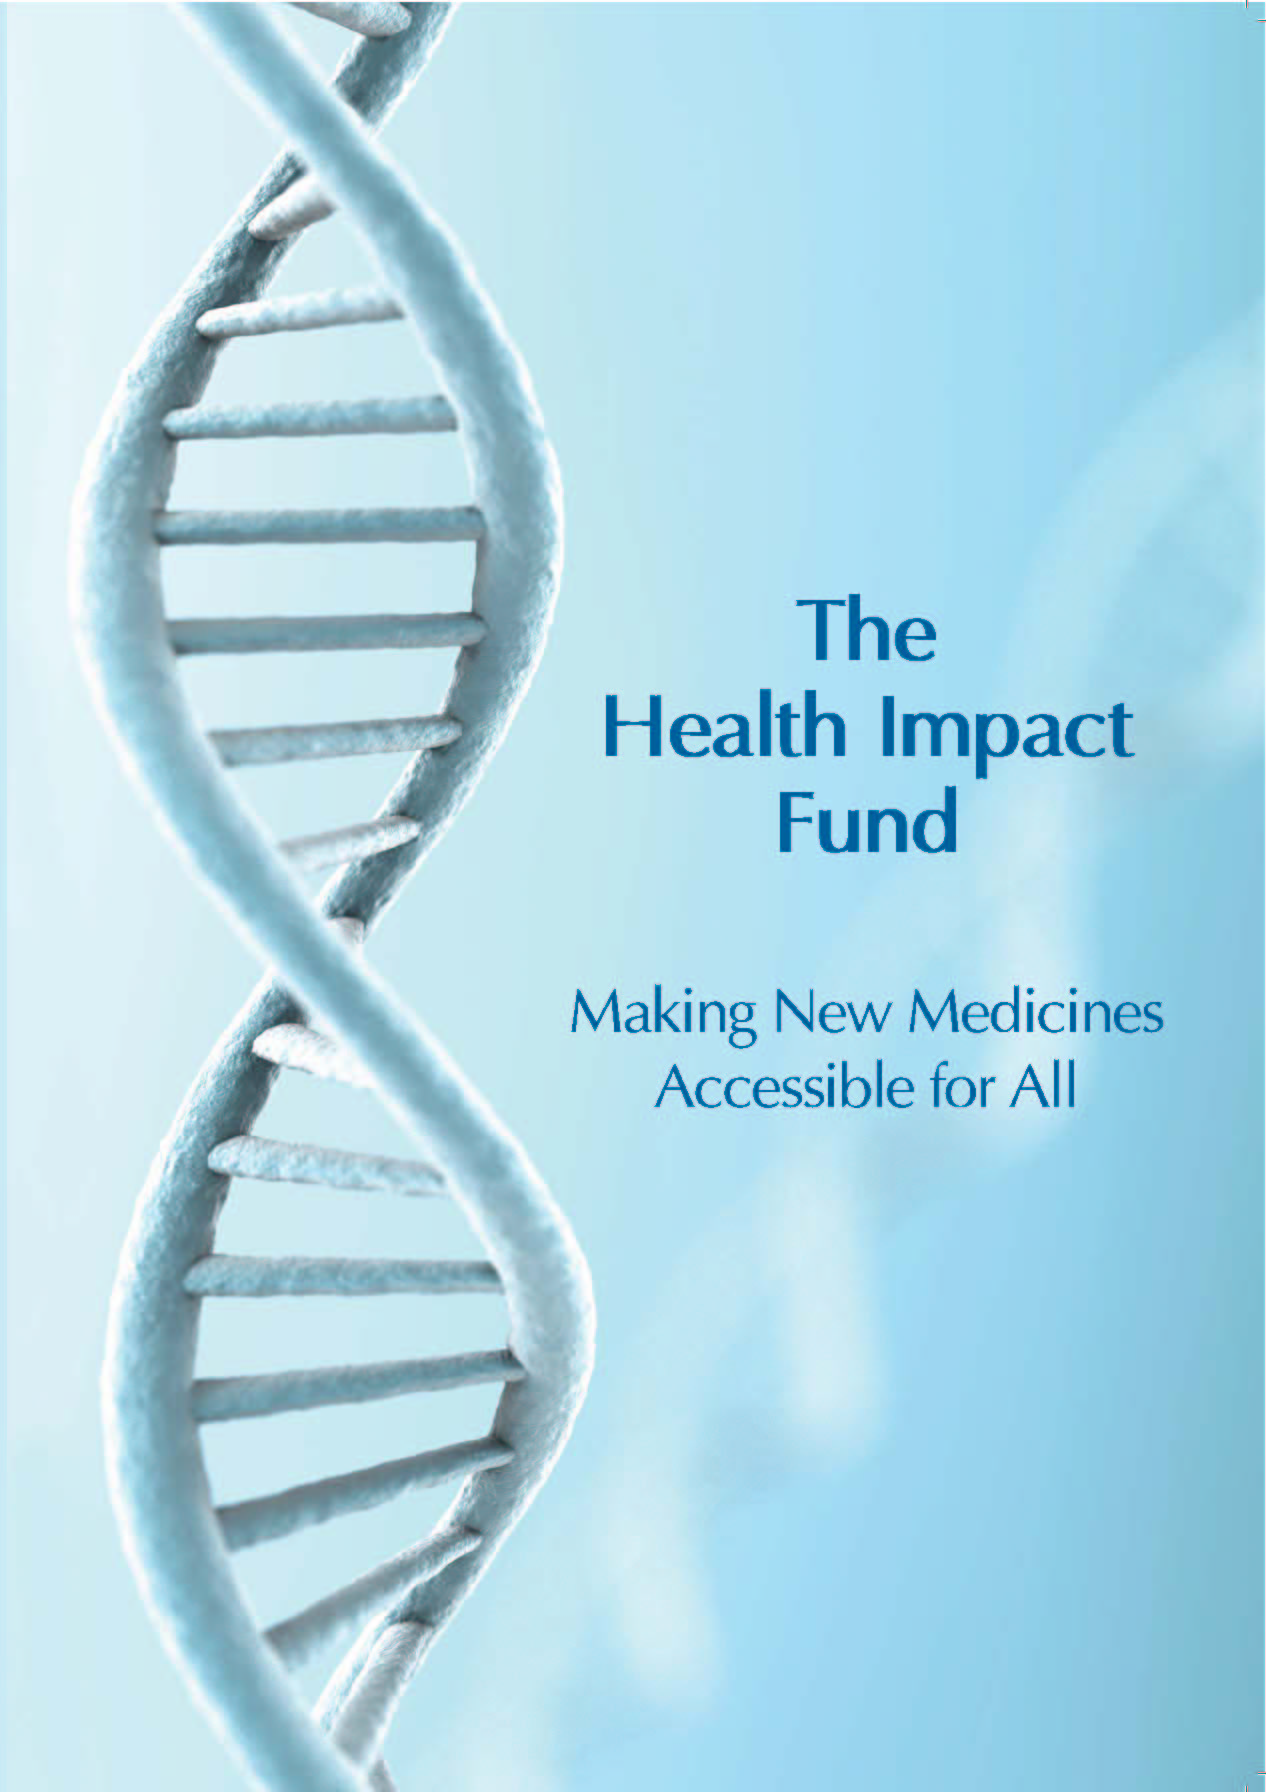 The health impact fund